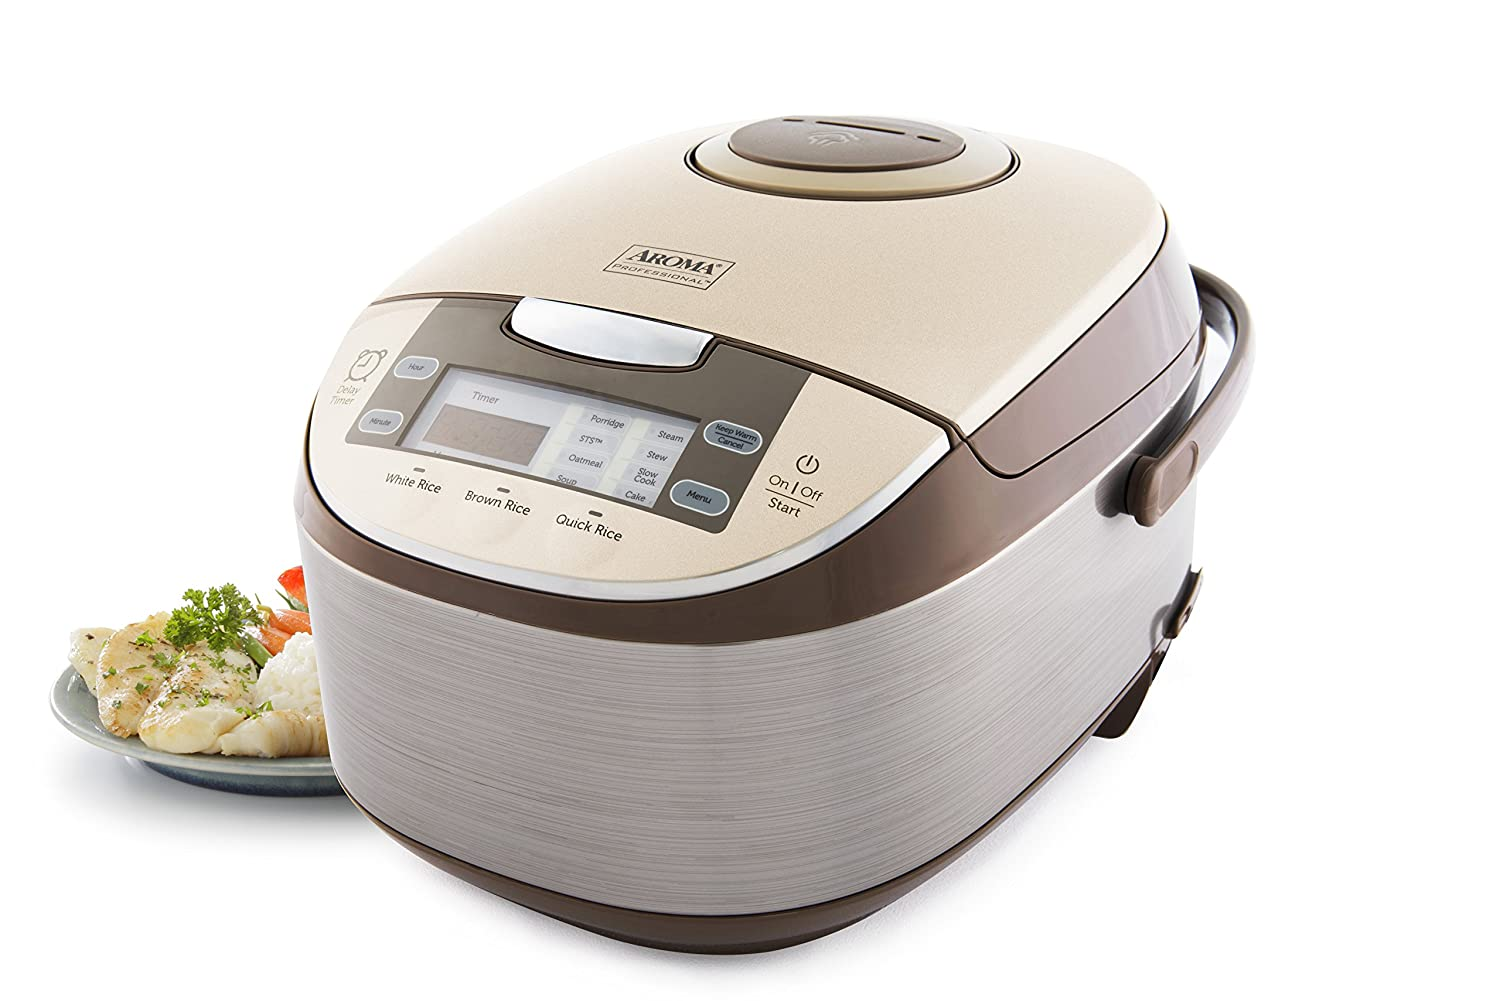 Amazon: Aroma Professional 6 Cups Uncooked Rice Cooker, Food Steamer,  Silver (arc6106): Kitchen & Dining